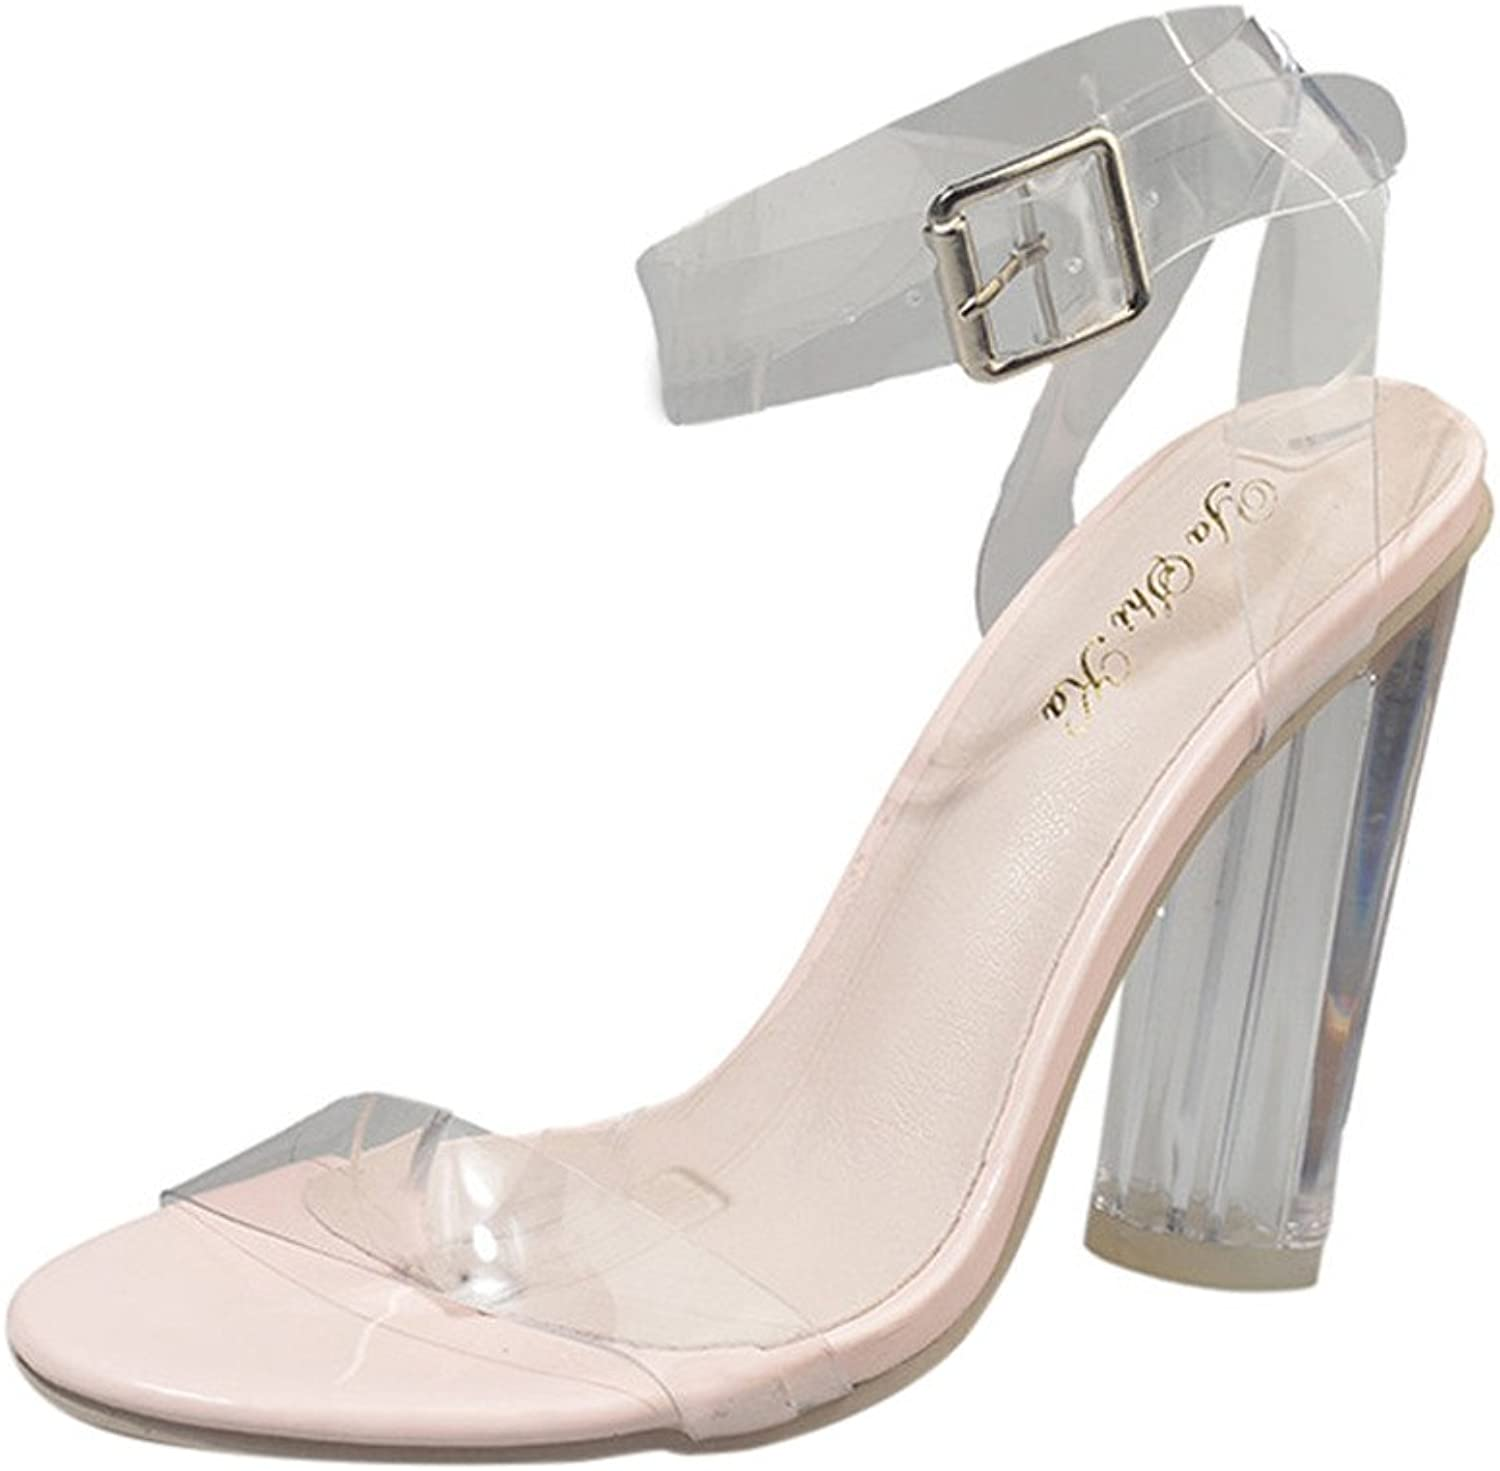 BOLUOYI Sandals Womens Heel,Wedge Sandals Women,Wedding Pumps Sandals,Pump Heels Sandals Fashion Women Hasp Transparent Thick Heel High-Heeled shoes Sandals